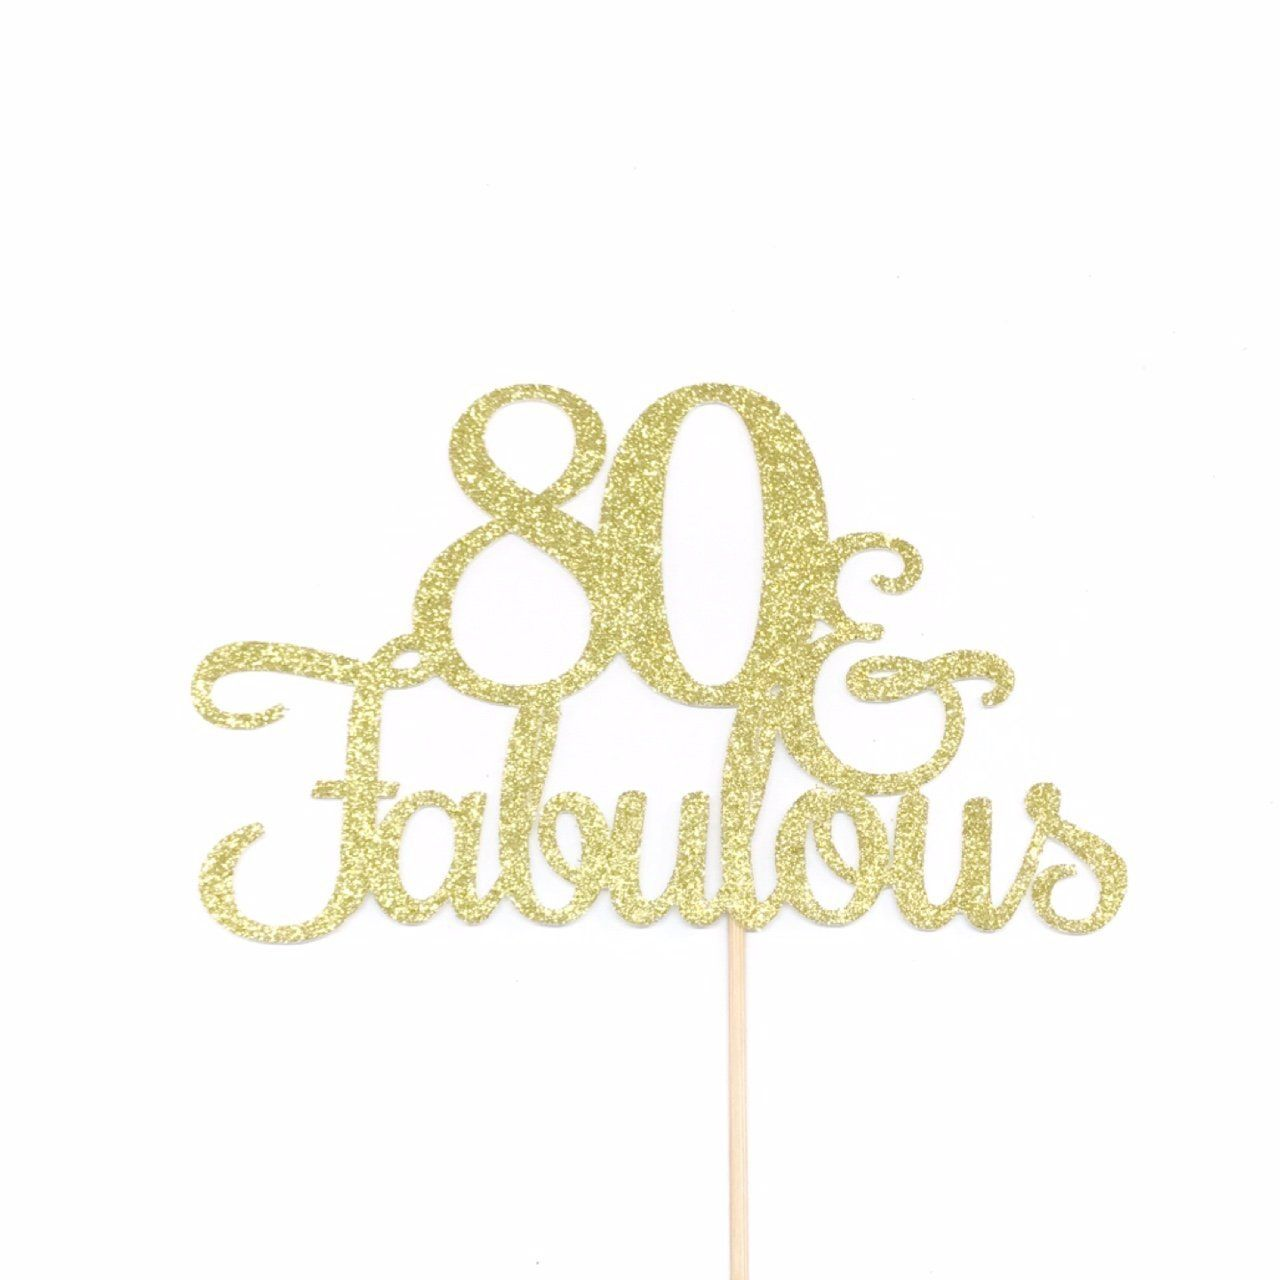 Glitter Cake Topper Eighty Birthday and Fabulous Cake Topper 80 and Fabulous Cake Topper 80 Cake Topper Happy 80th 80th Birthday Party Birthday Cake Topper 80th Birthday Decorations